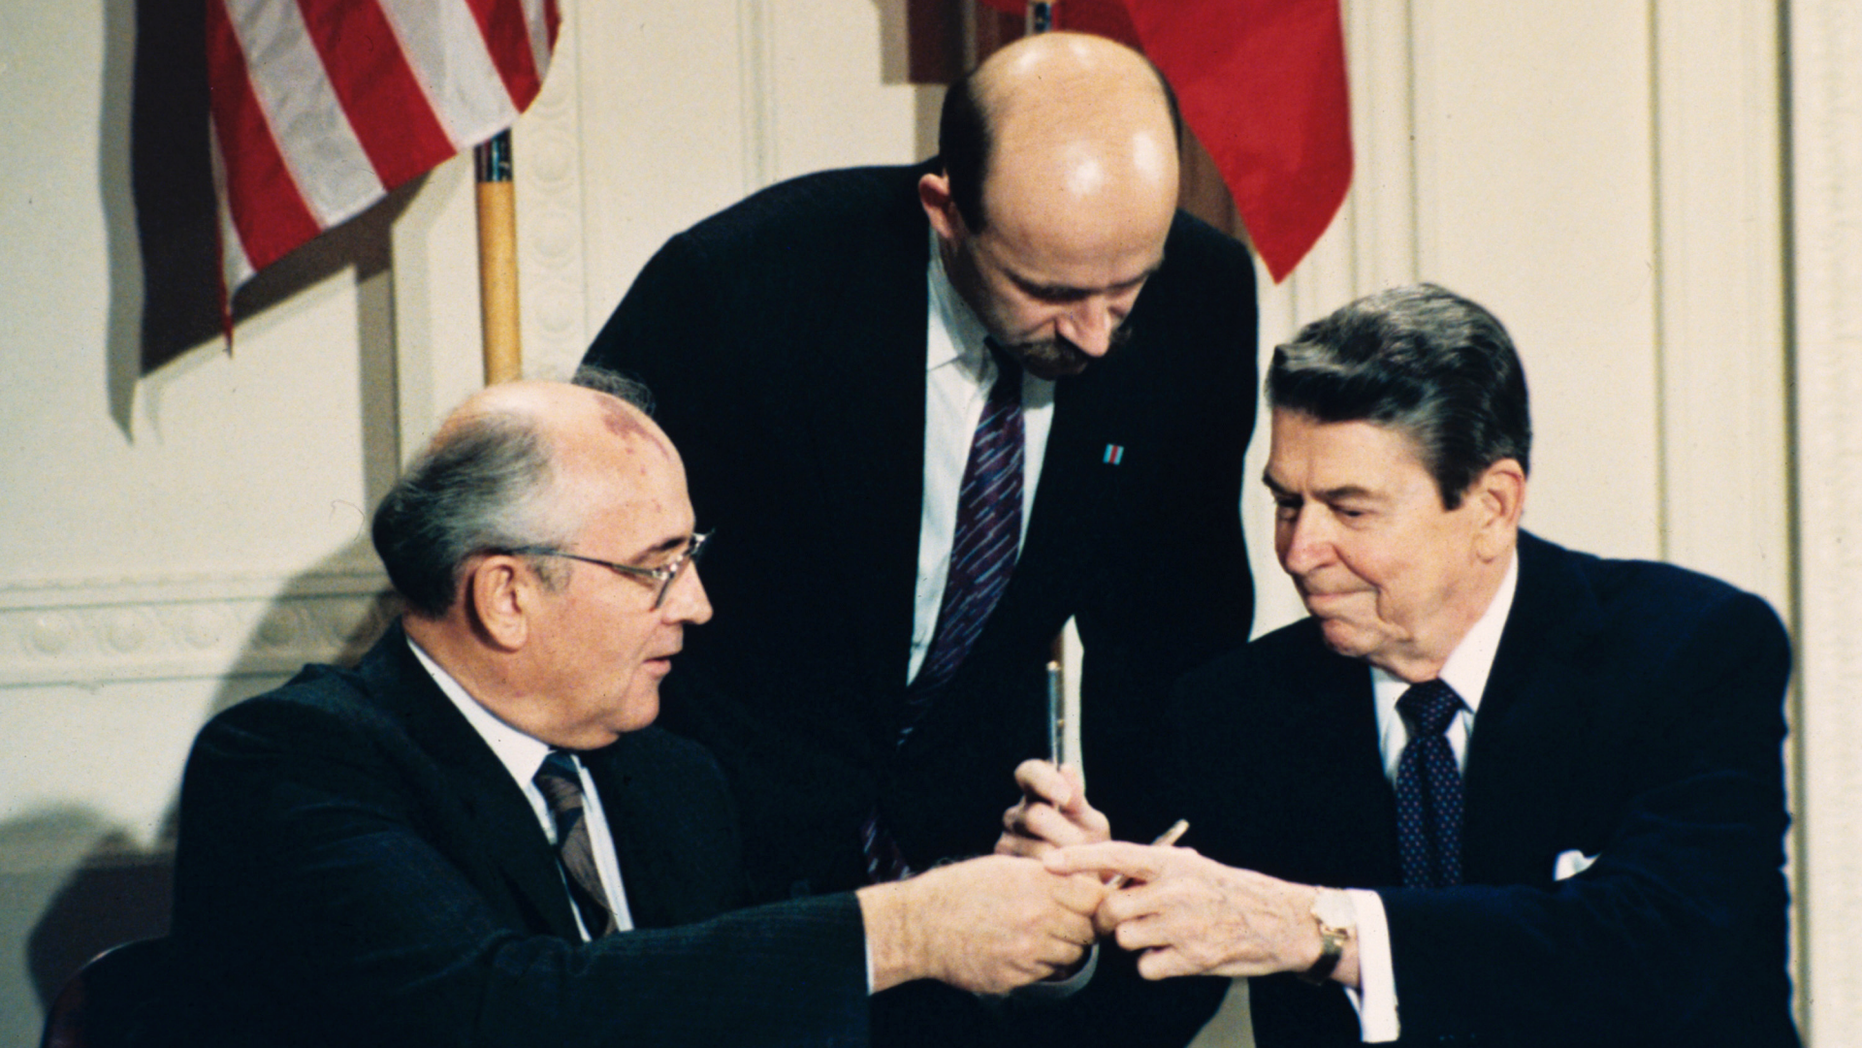 FILE - In this Dec. 8, 1987 file photo U.S. President Ronald Reagan, right, and Soviet leader Mikhail Gorbachev exchange pens during the Intermediate Range Nuclear Forces Treaty signing ceremony in the White House East Room in Washington, D.C. Gorbachev's translator Pavel Palazhchenko stands in the middle. Trump's announcement that the United States would leave the Intermediate-Range Nuclear Forces, or INF, treaty brought sharp criticism on Sunday Oct. 21, 2018, from Russian officials and from former Soviet President Mikhail Gorbachev, who signed the treaty in 1987 with President Ronald Reagan. (AP Photo/Bob Daugherty, File)